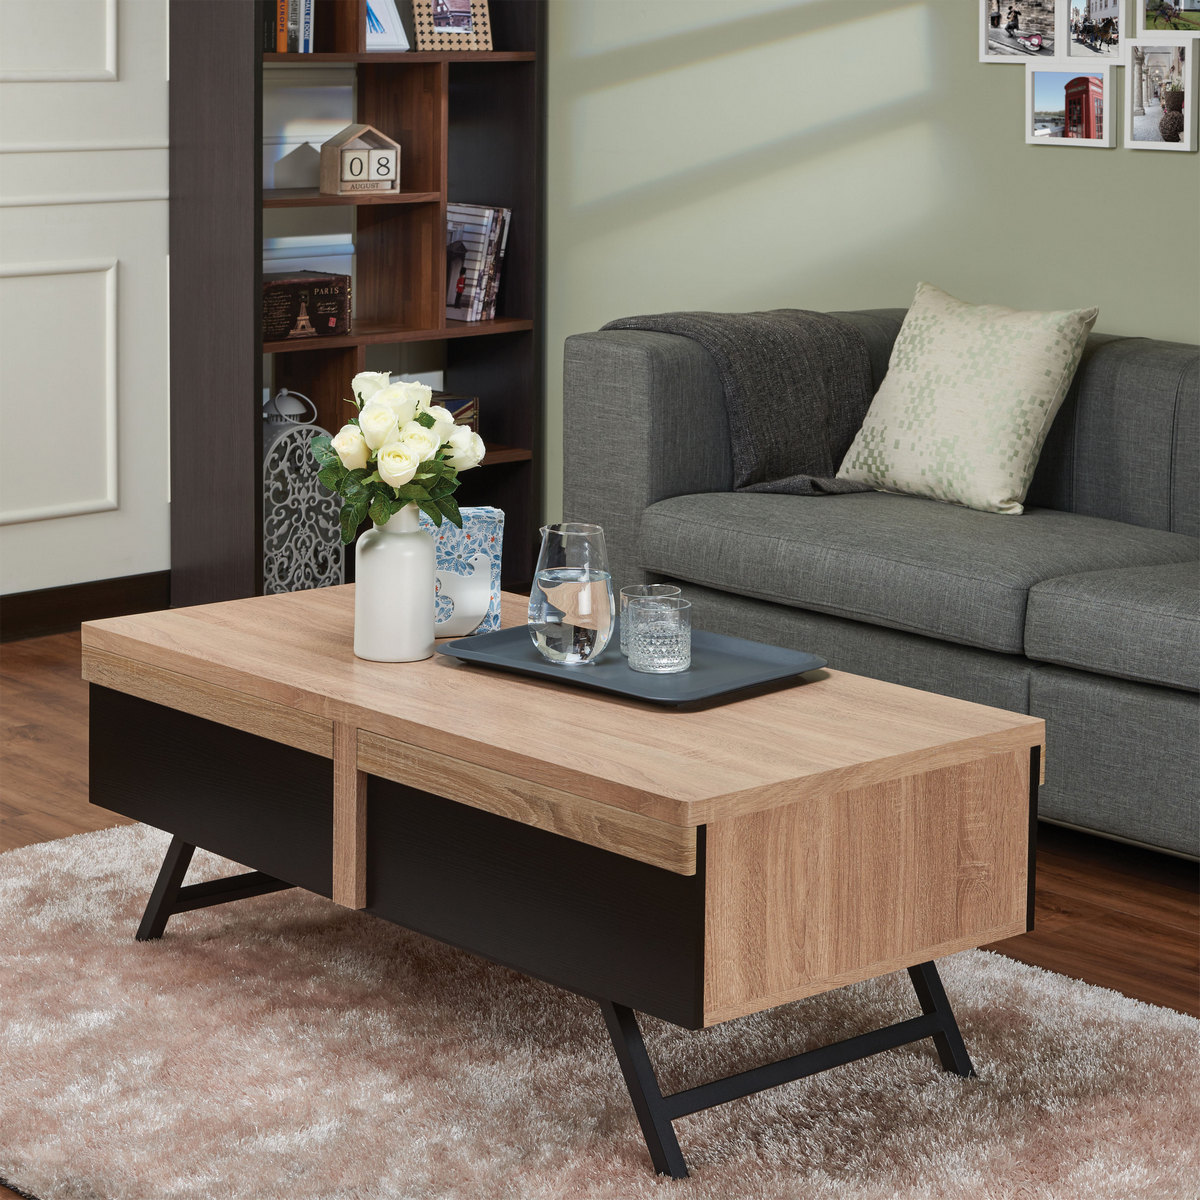 Furniture | Natural | Coffee | Table | Black